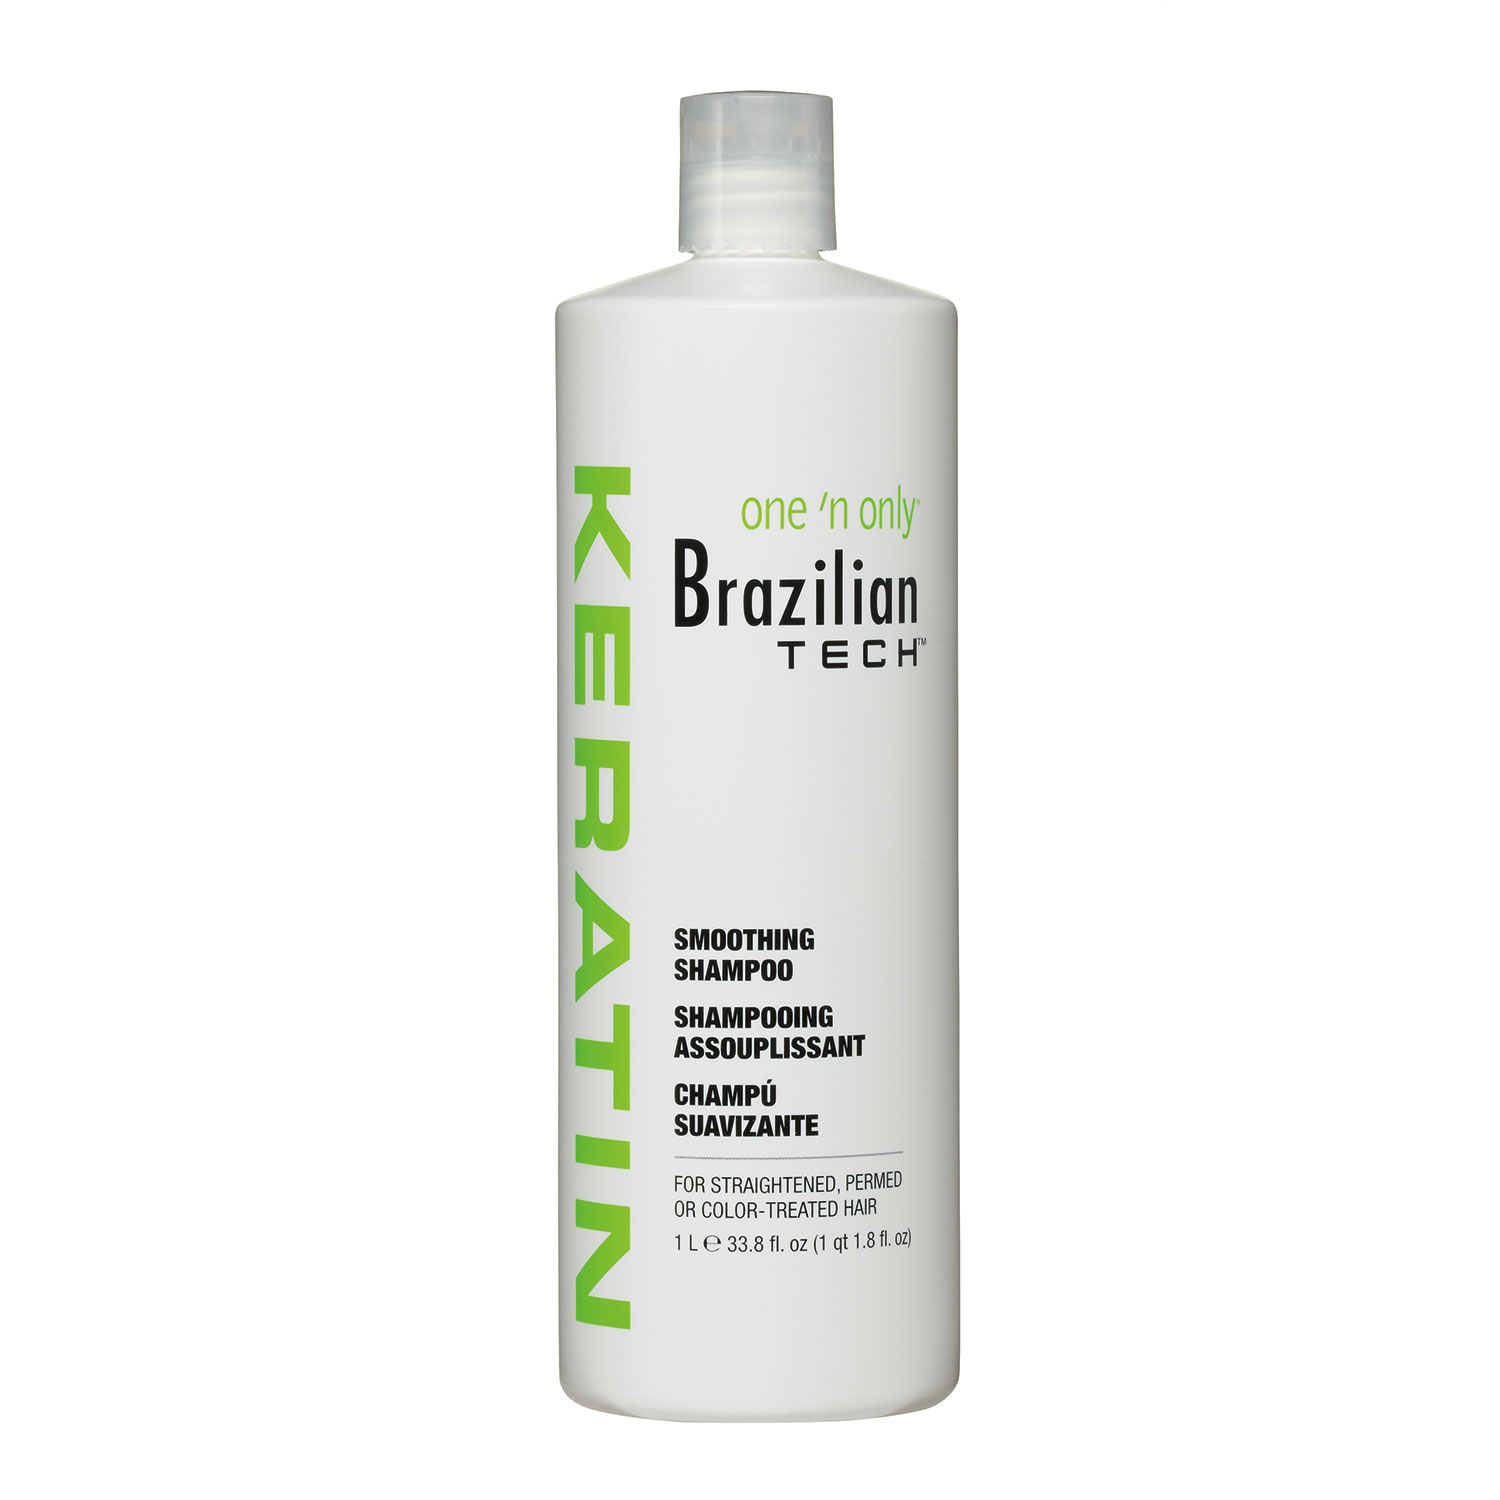 Image of Brazilian Tech Keratin Smoothing Shampoo - 33.8oz